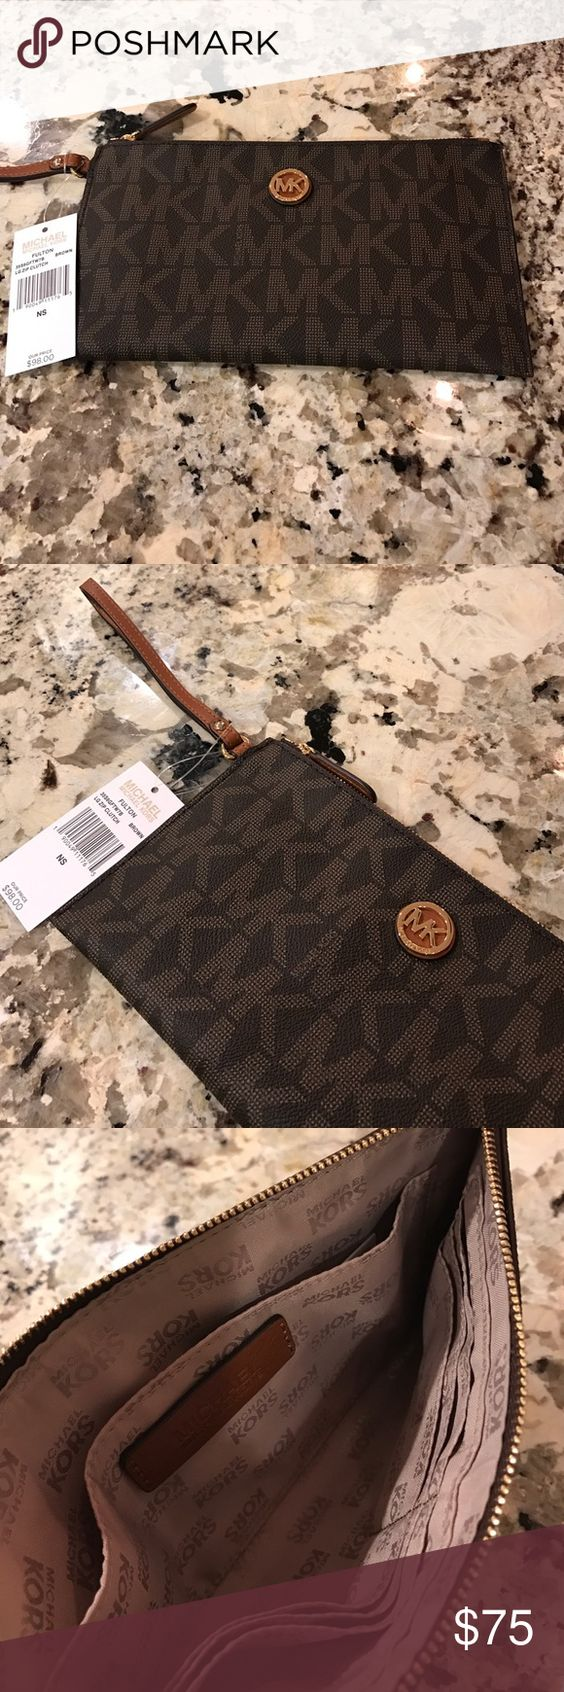 Michael Michael Kors Large Zip Clutch♦️ Michael Michael Kors Large Zip Clutch♦️. NEW with tags!  Inside has large open slip pocket that fits iPhone 7 Plus and 6 card slots. MICHAEL Michael Kors Bags Clutches & Wristlets